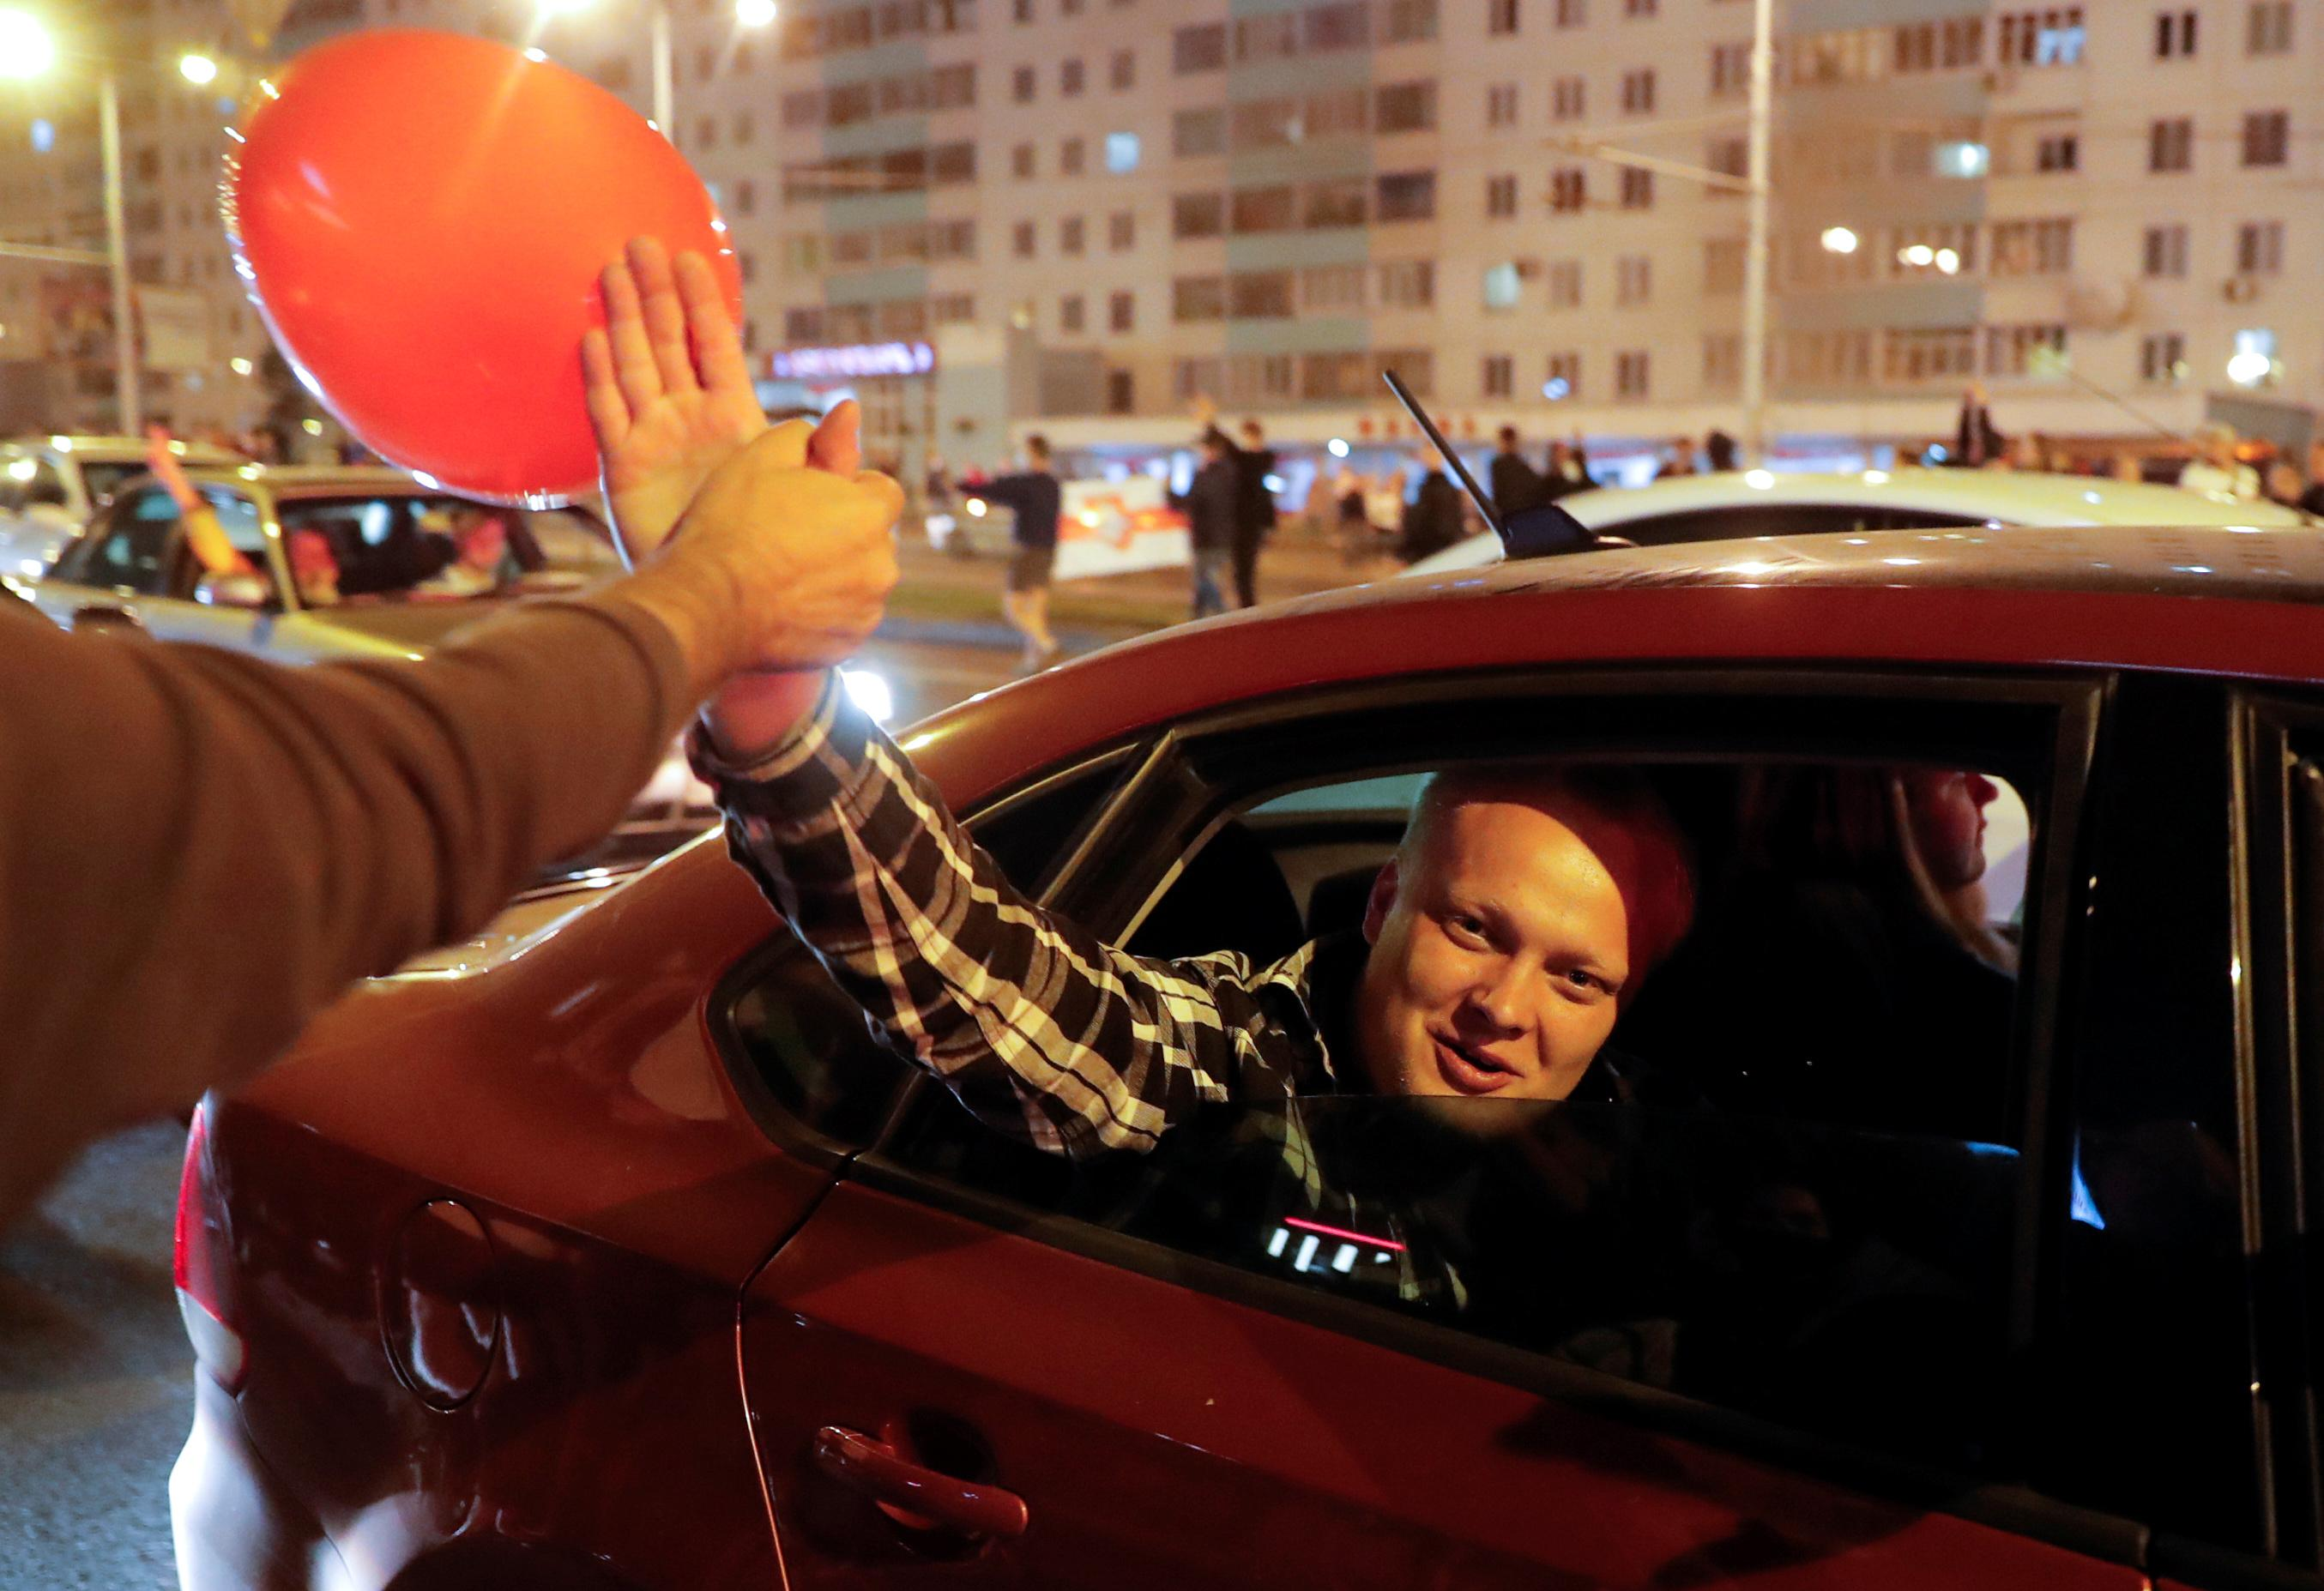 'We don't need war': Belarus leadership says sorry in bid to quell protests